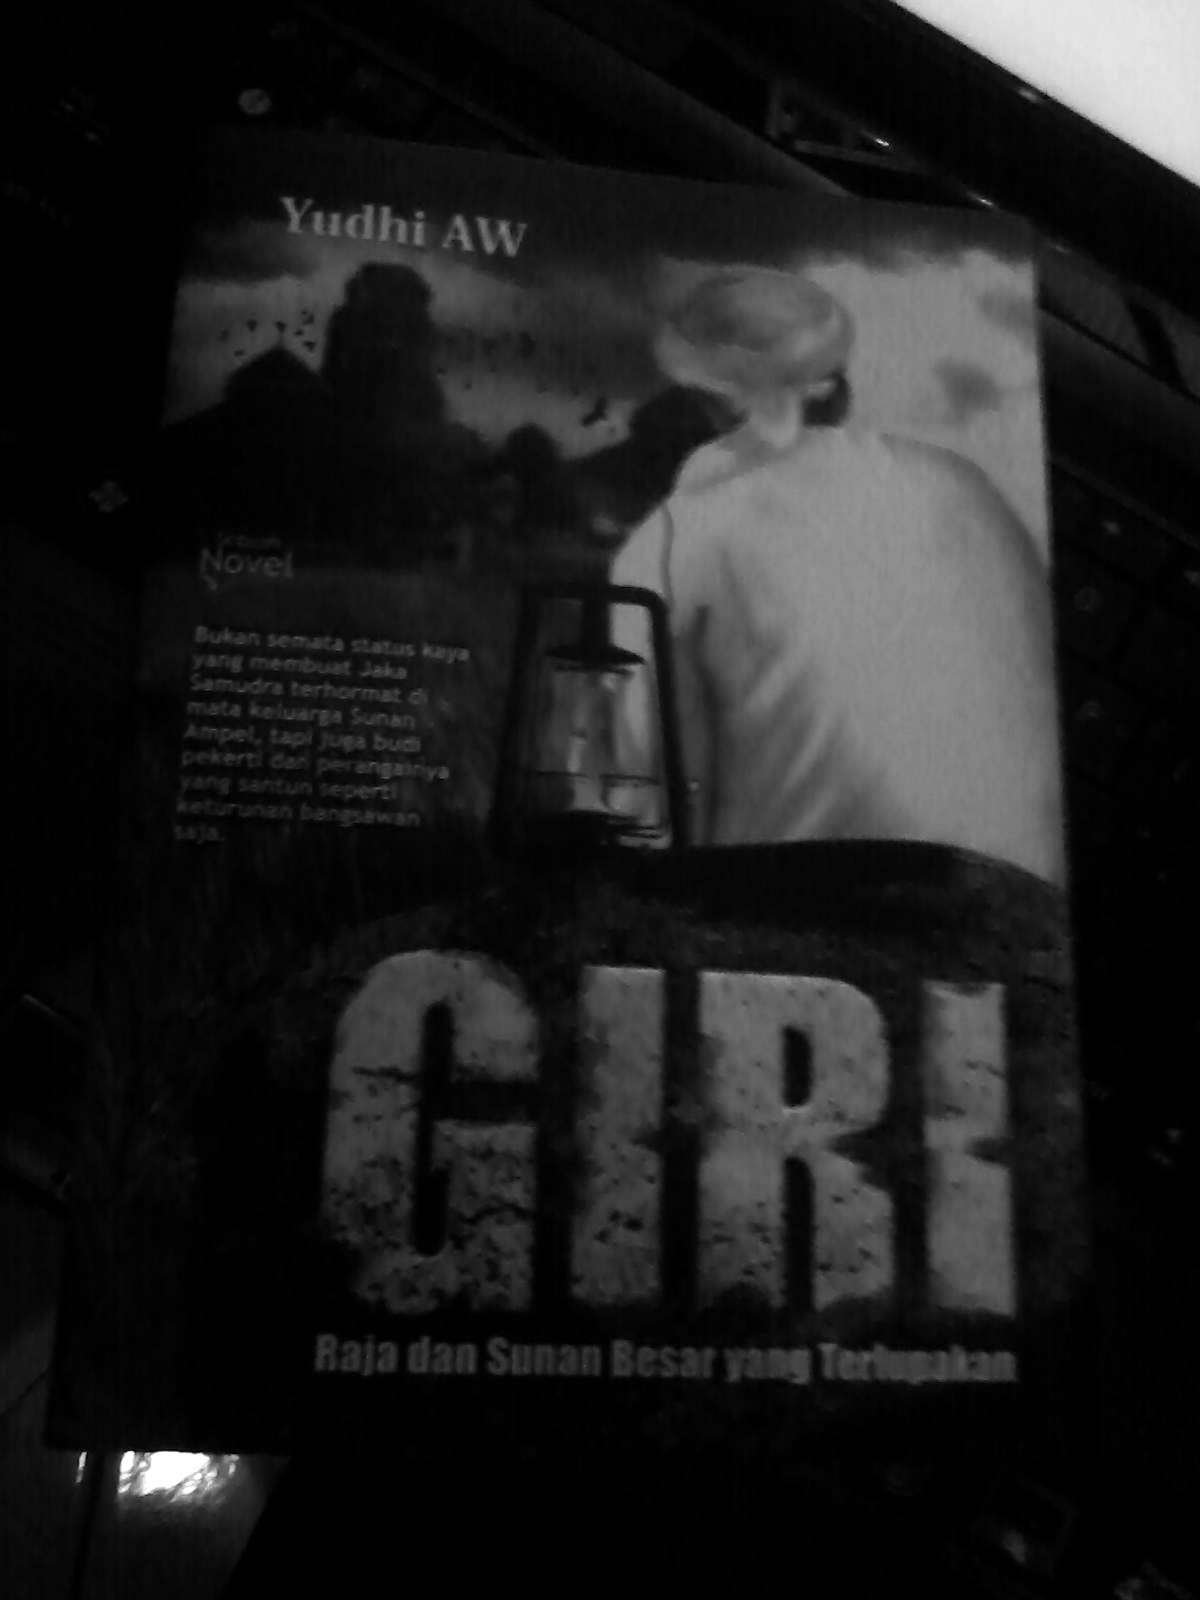 novel sunan giri